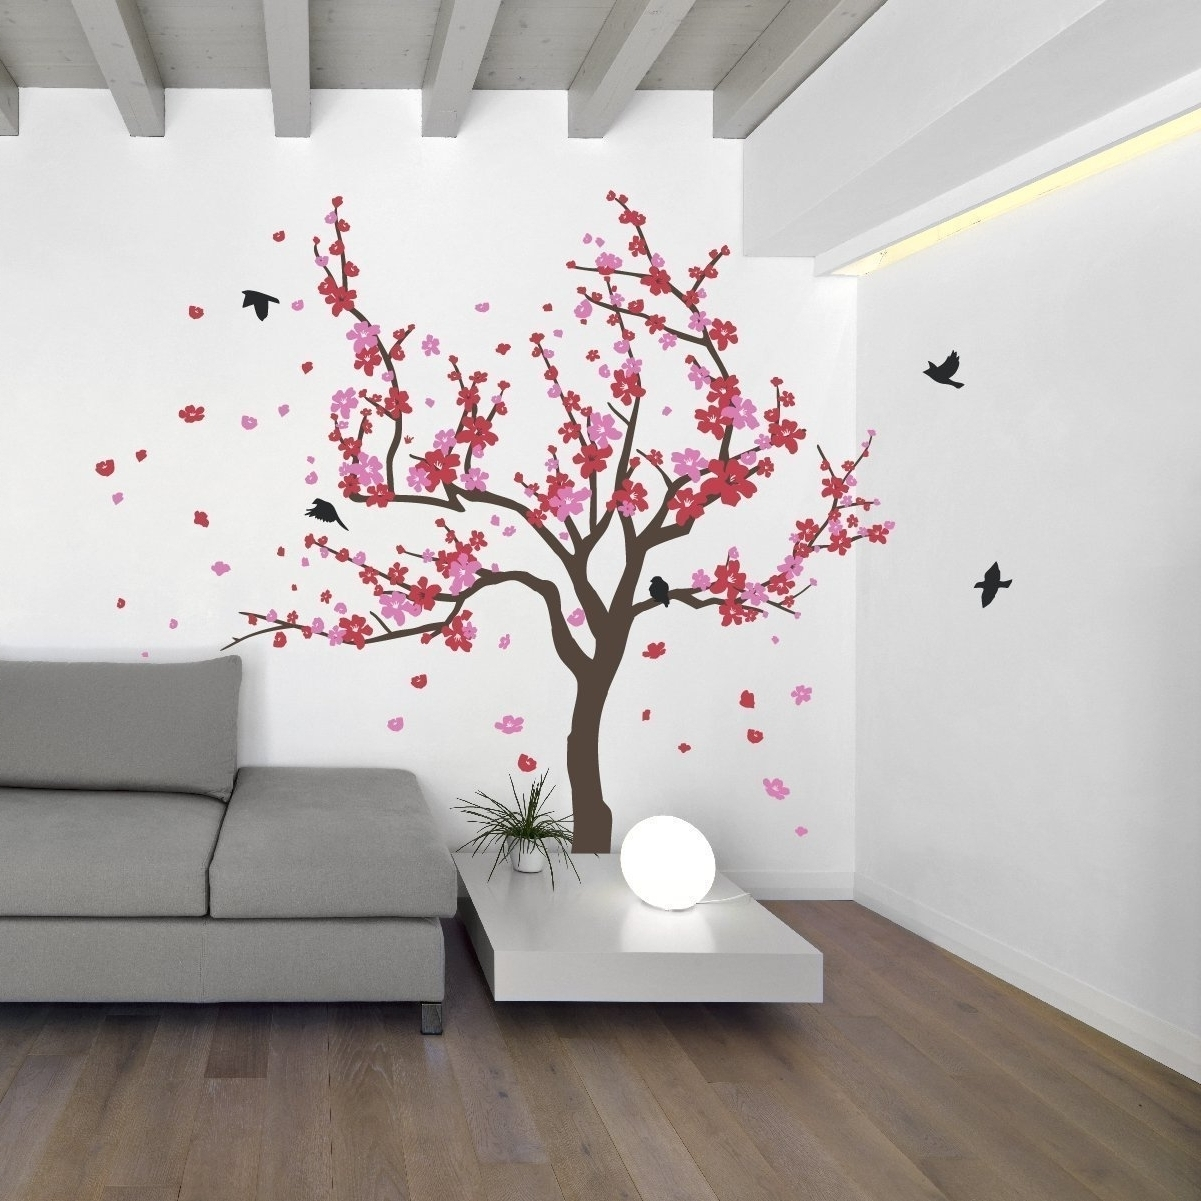 15 Best Ideas Of Red Cherry Blossom Wall Art, Cherry Blossom Wall for Cherry Blossom Wall Art (Image 1 of 20)